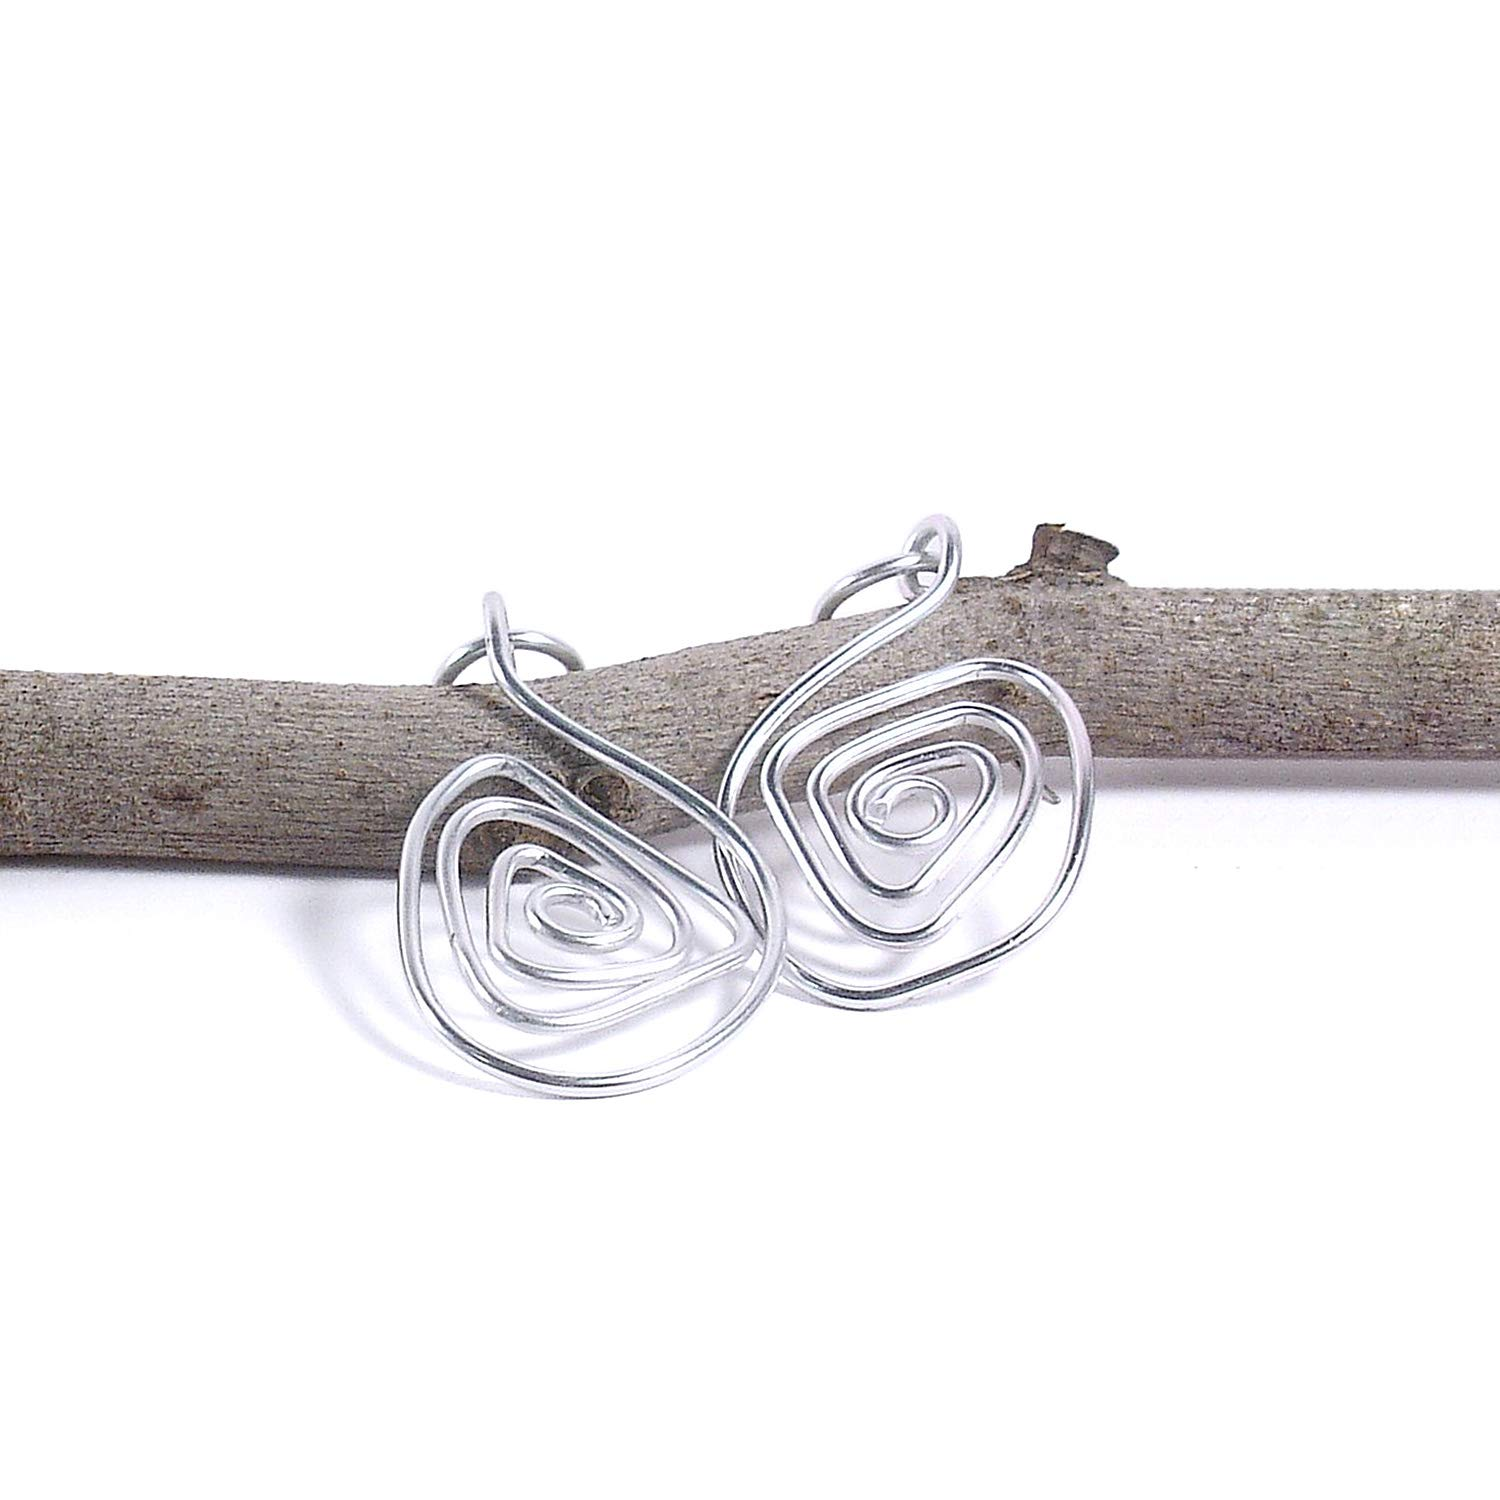 32.8 feet 10 M Bendable and Flexible Floral Armature Wire for DIY Arts and Craft Projects by STARVAST 9 Gauge Silver Aluminum Wire Metal Craft Wire 3mm Diameter